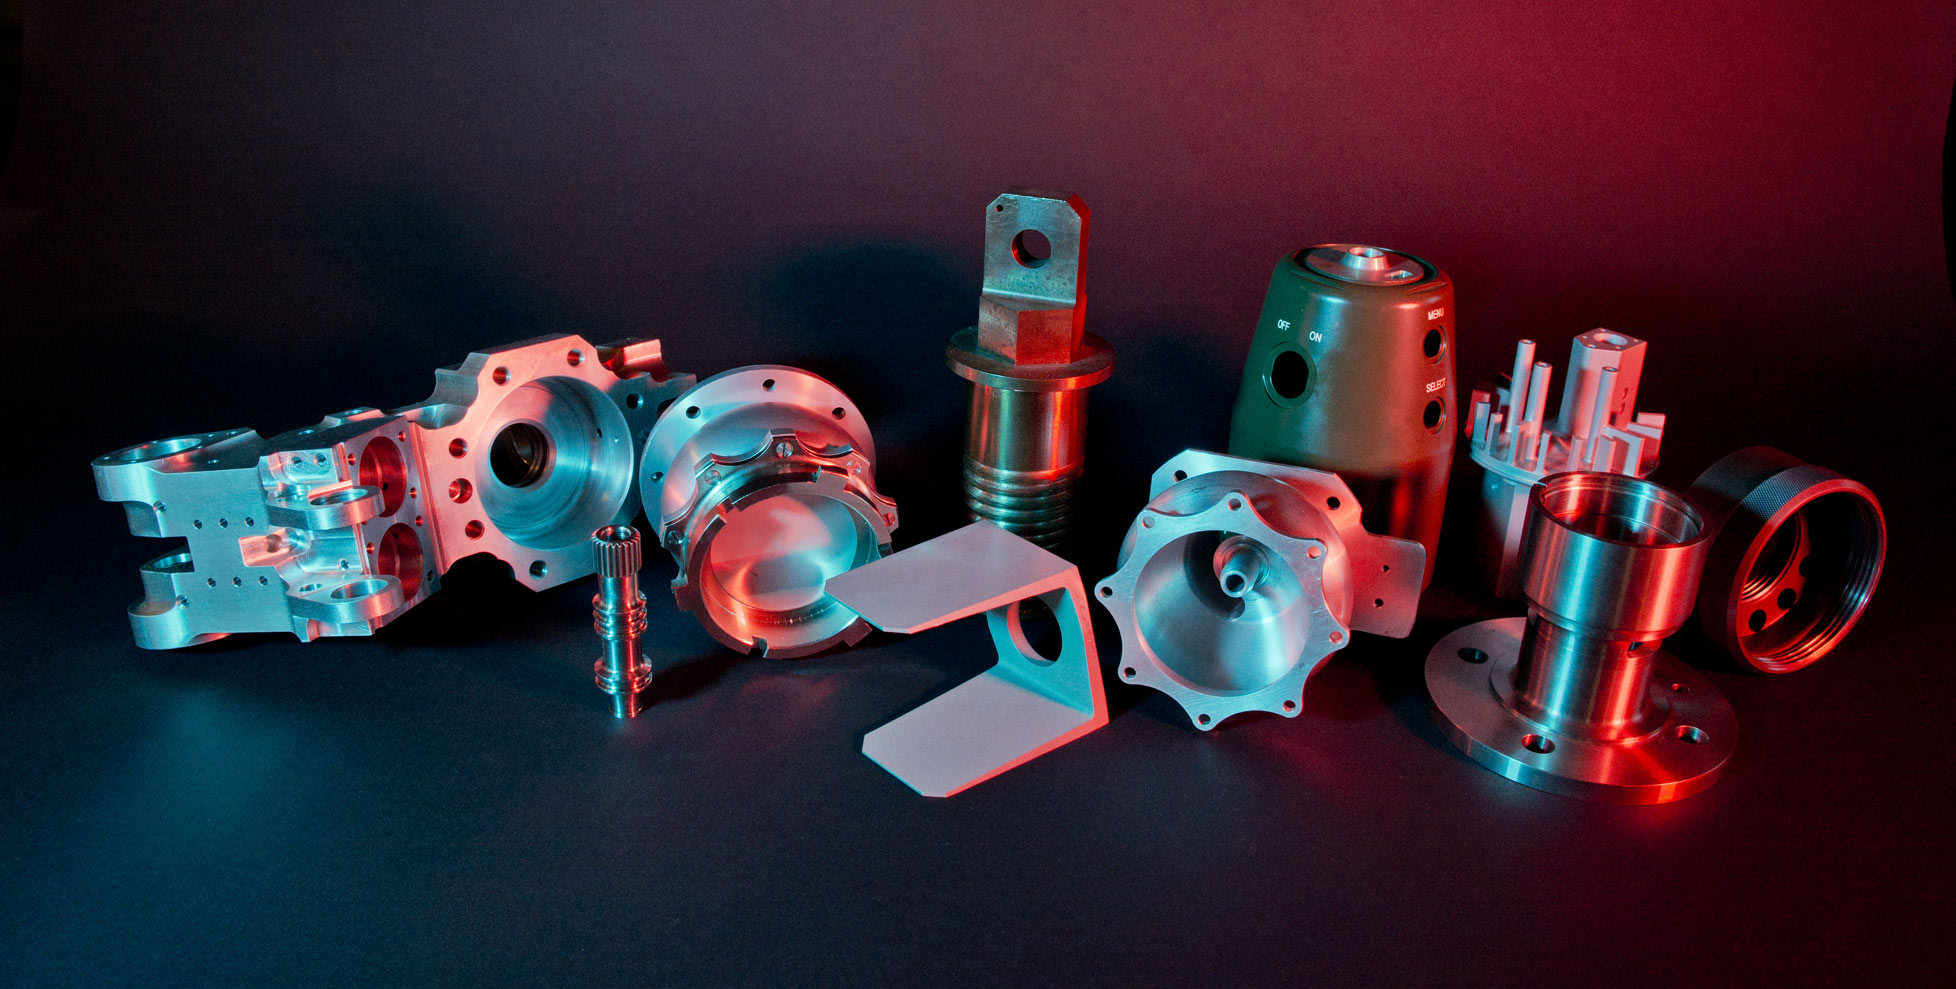 components-grouped-image-from-Aerotech-limited